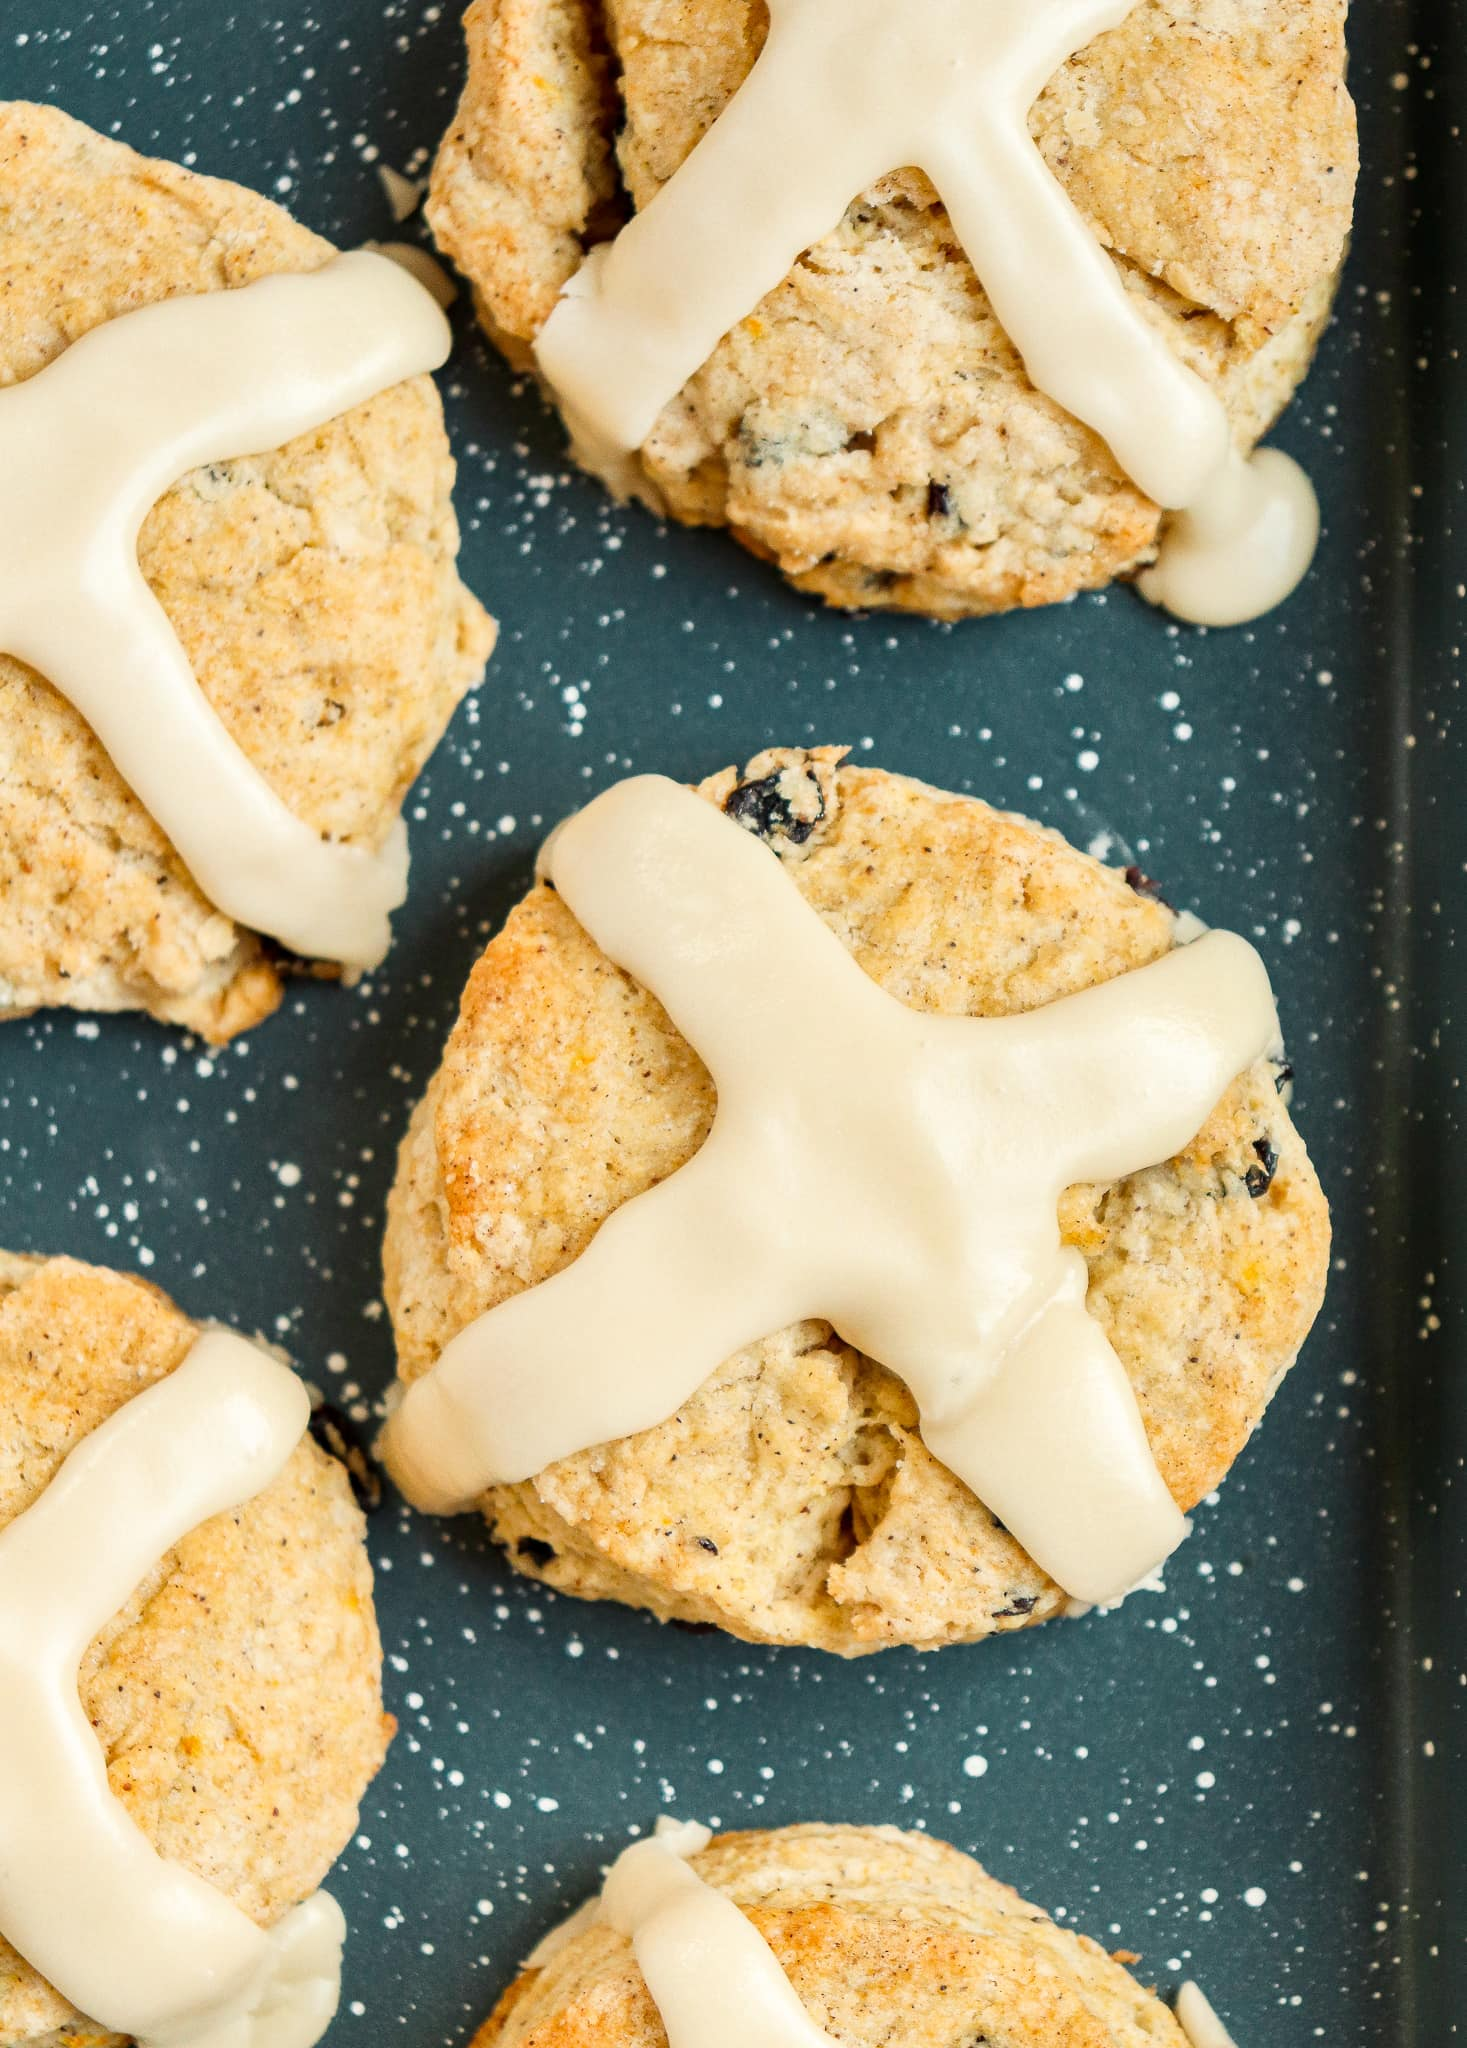 spiced currant scones with cross-shaped icing on top